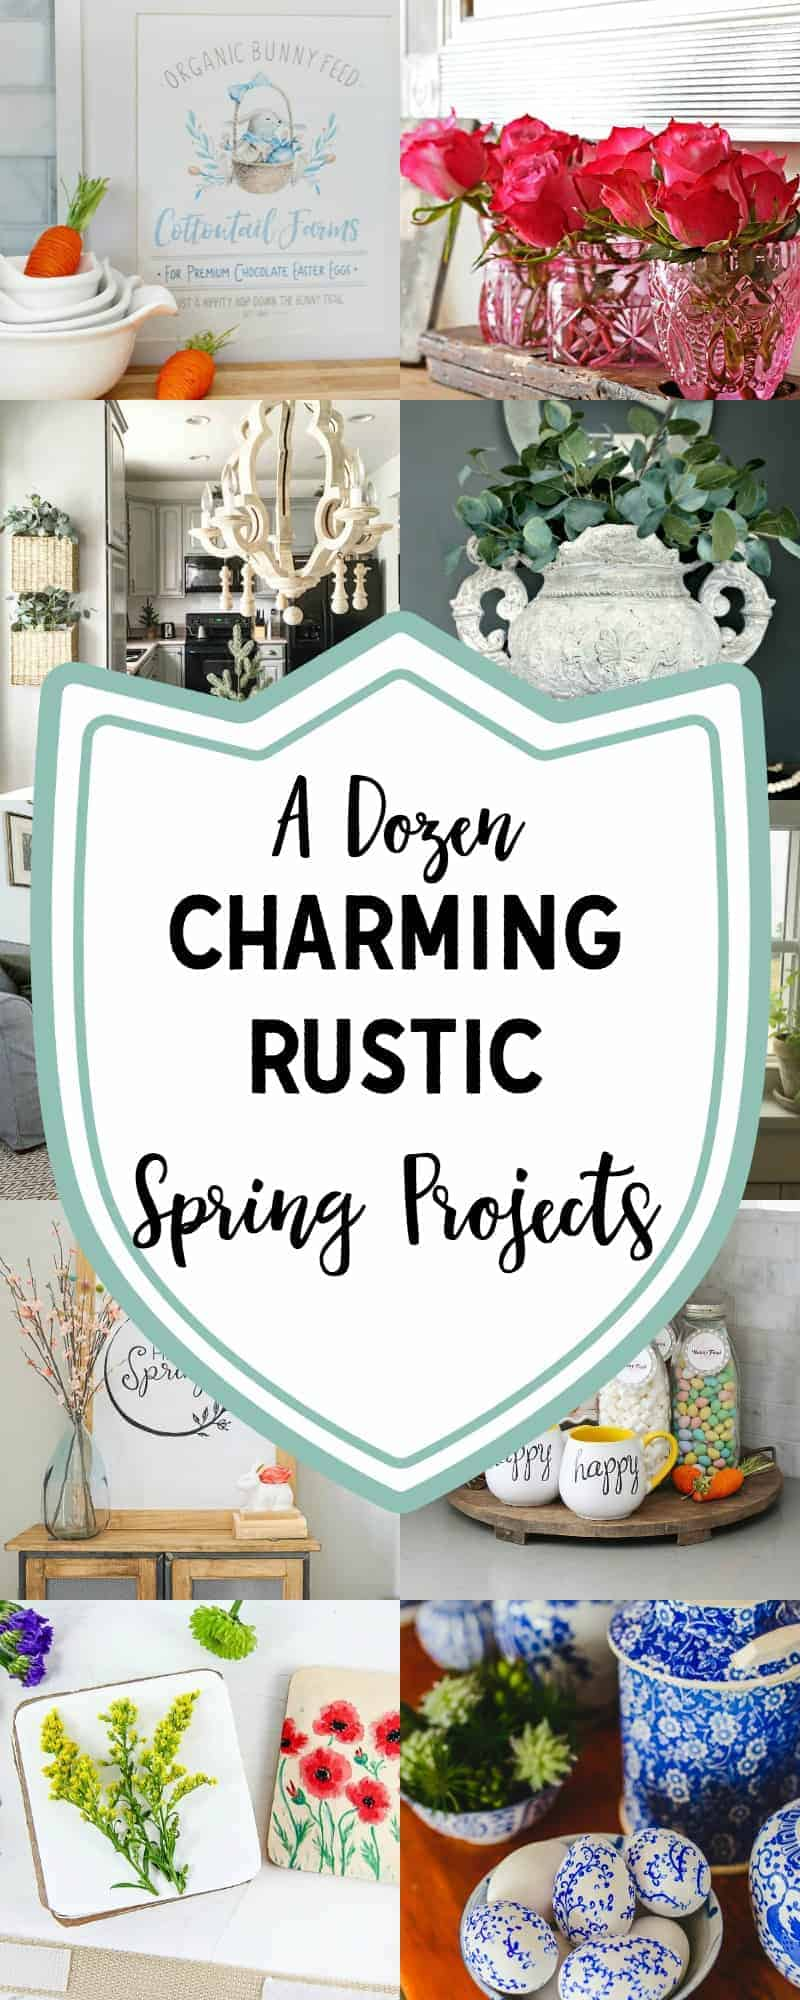 Long pinterest collage of 12 charming rustic projects for spring with text overlay crafting blogger